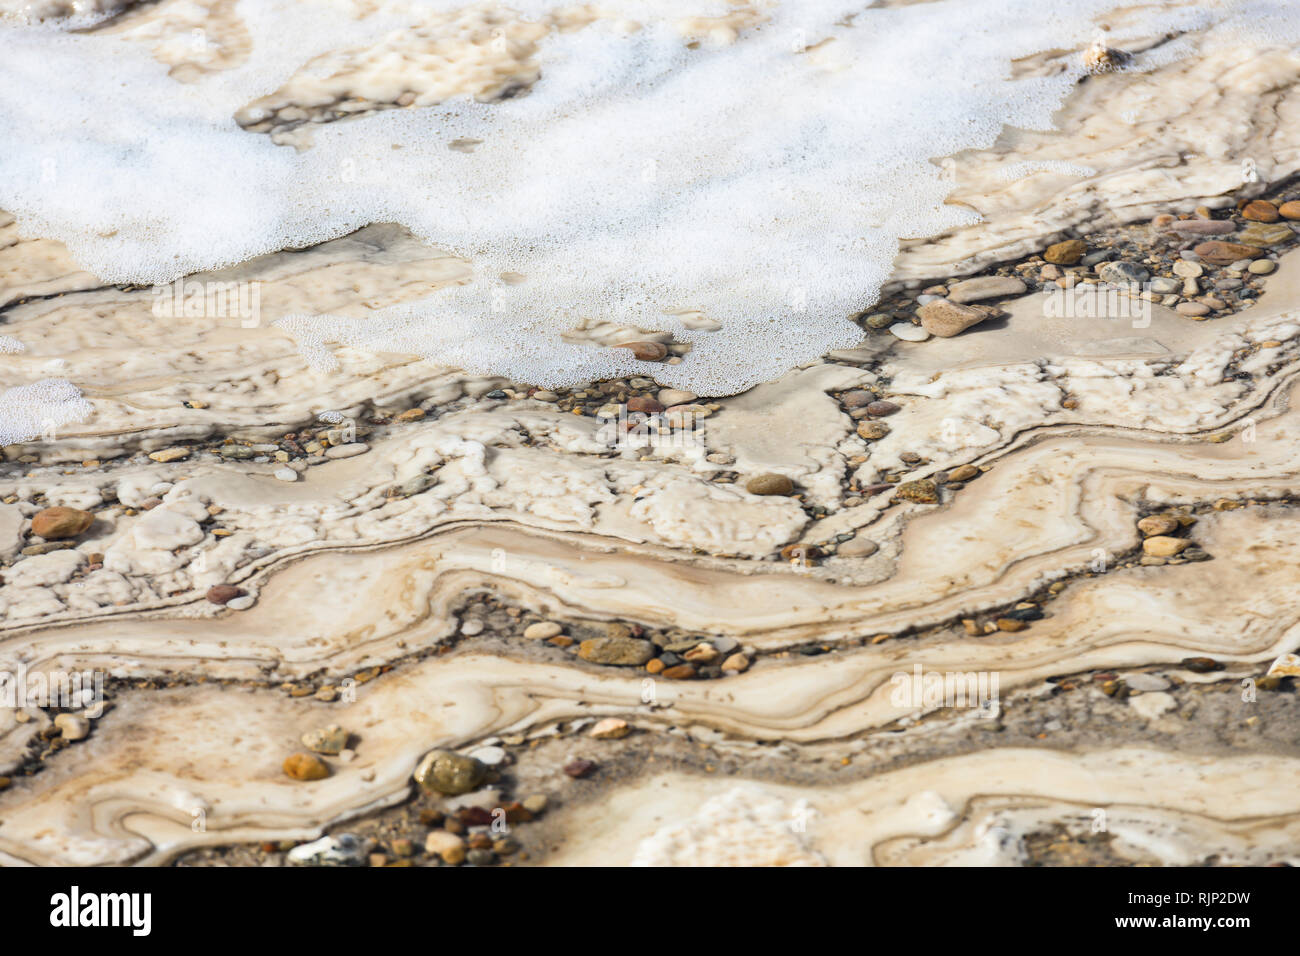 Close-up view of the Dead Sea shore seen from the Israeli border. - Stock Image